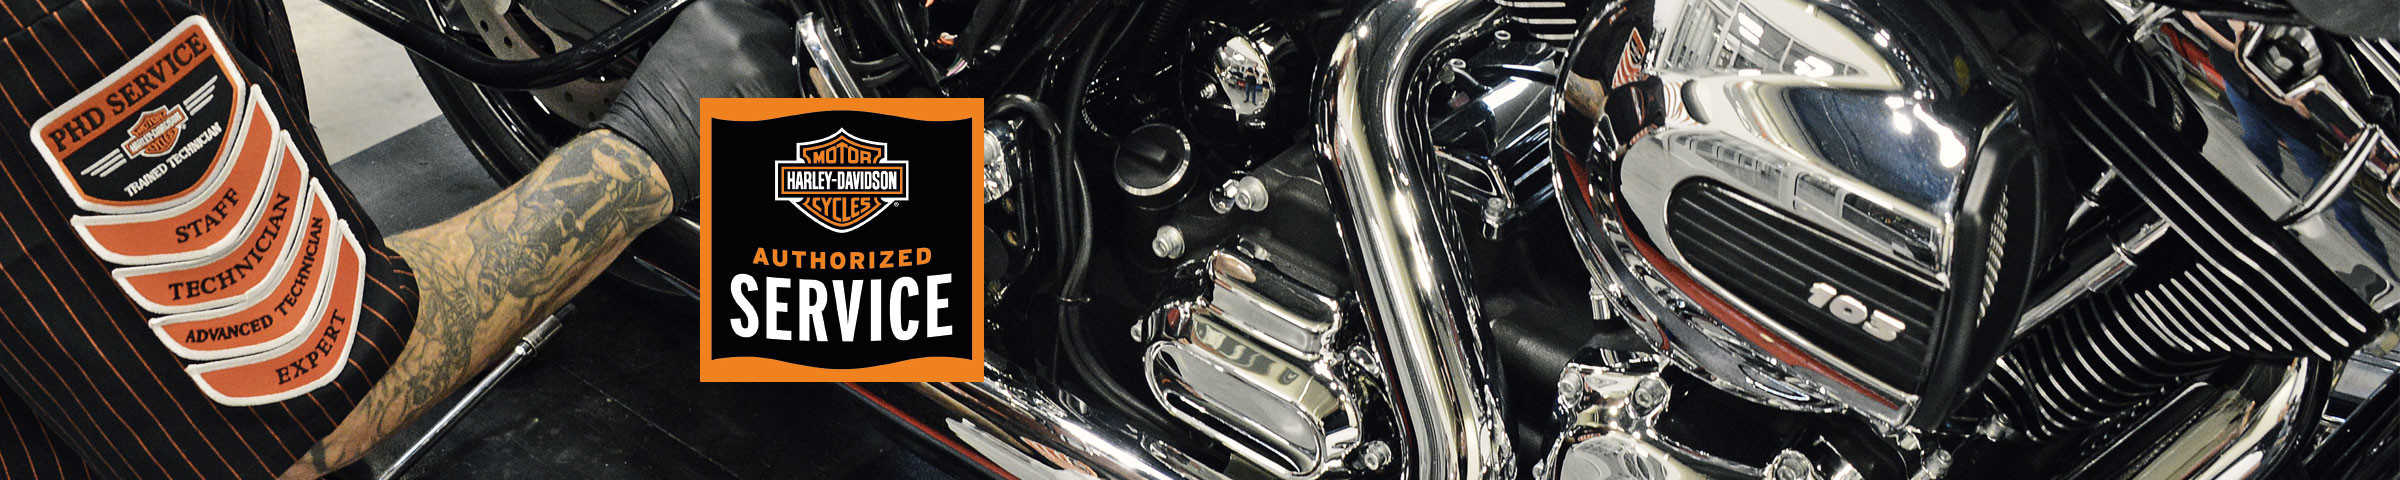 Motorcycle Repair Services near Troy, NY